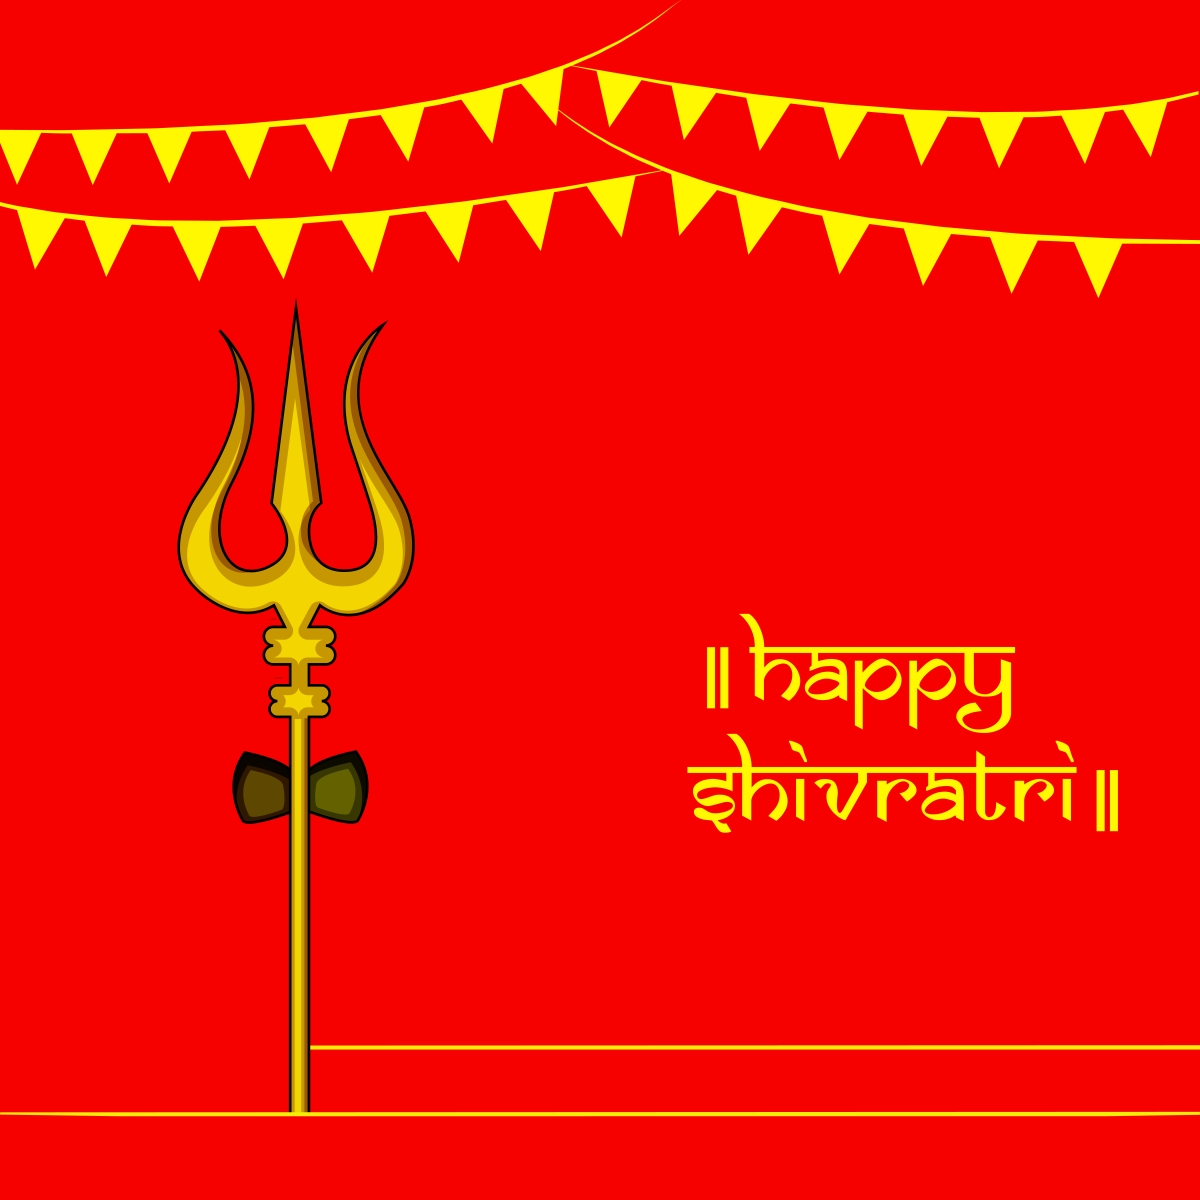 Sawan Shivratri 2019 Images with Quotes in English, Happy